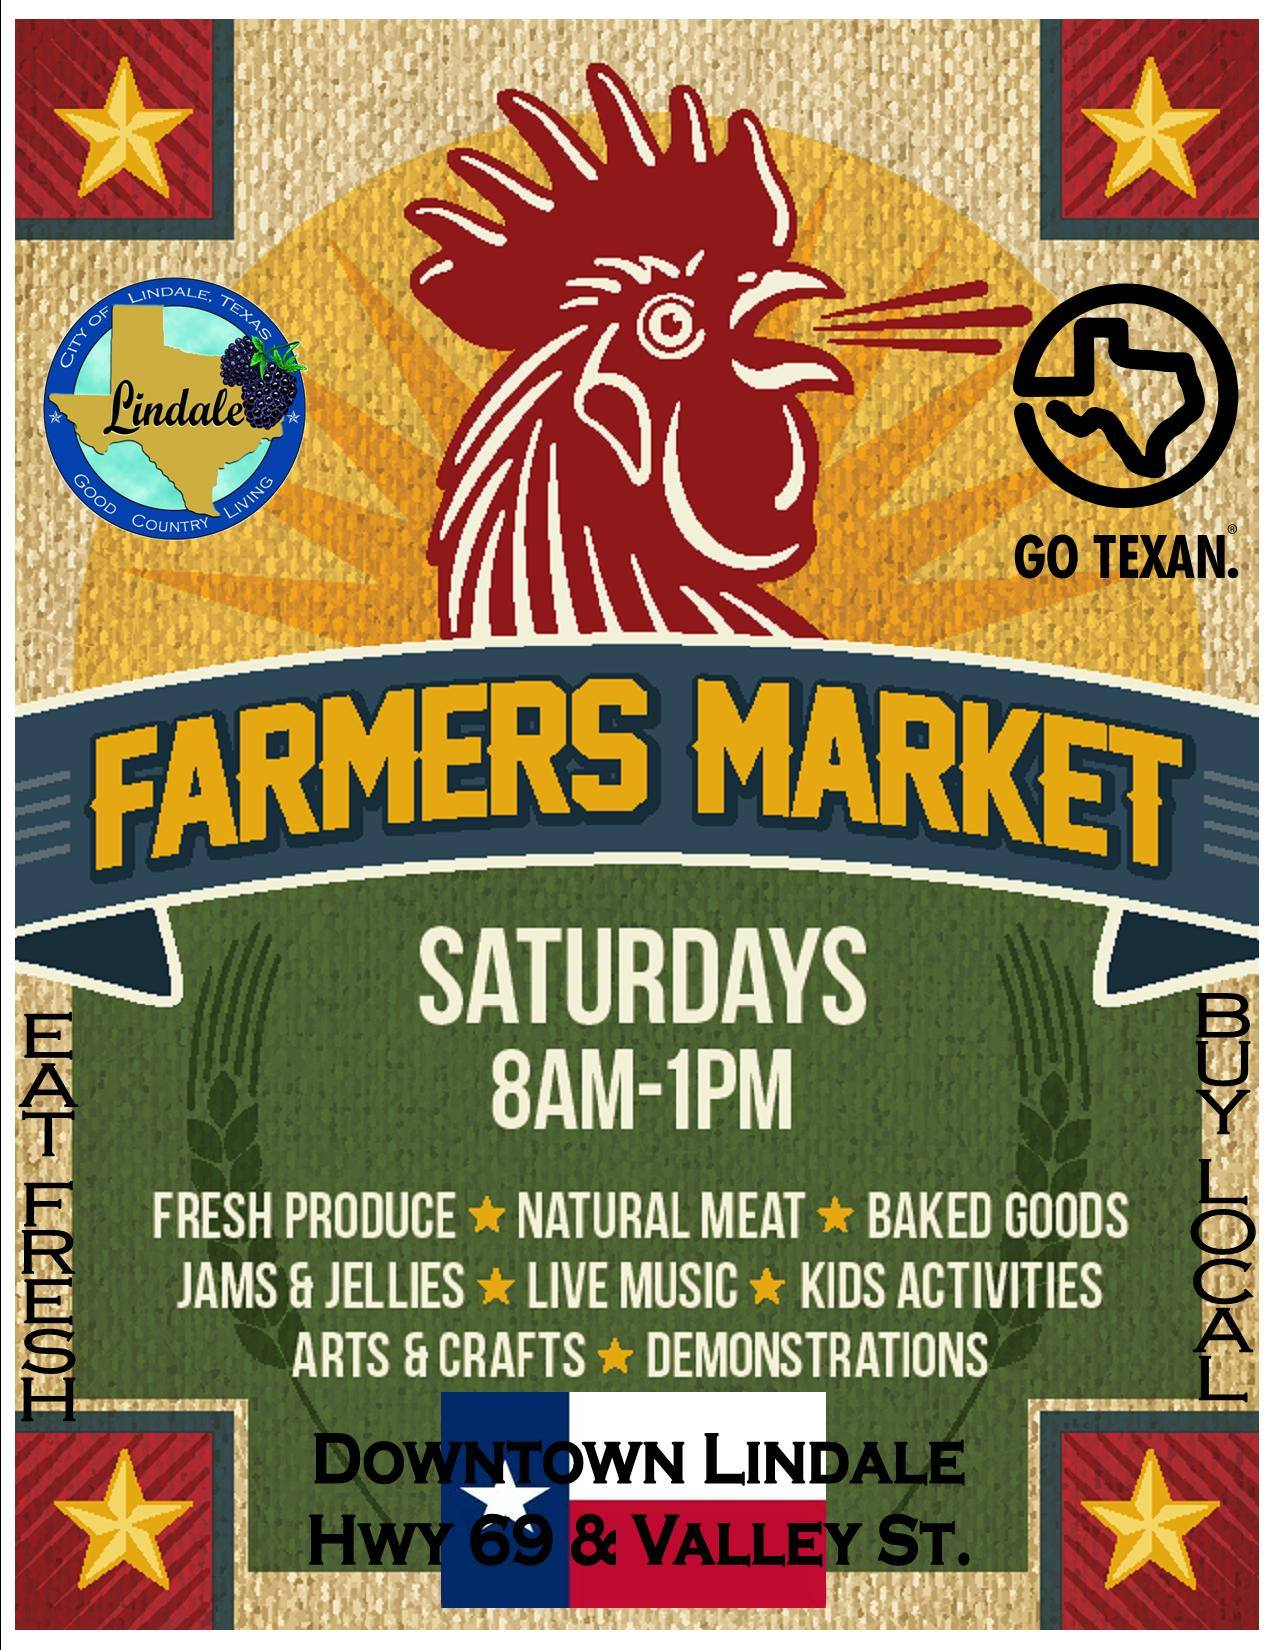 farmers market flyer.jpg